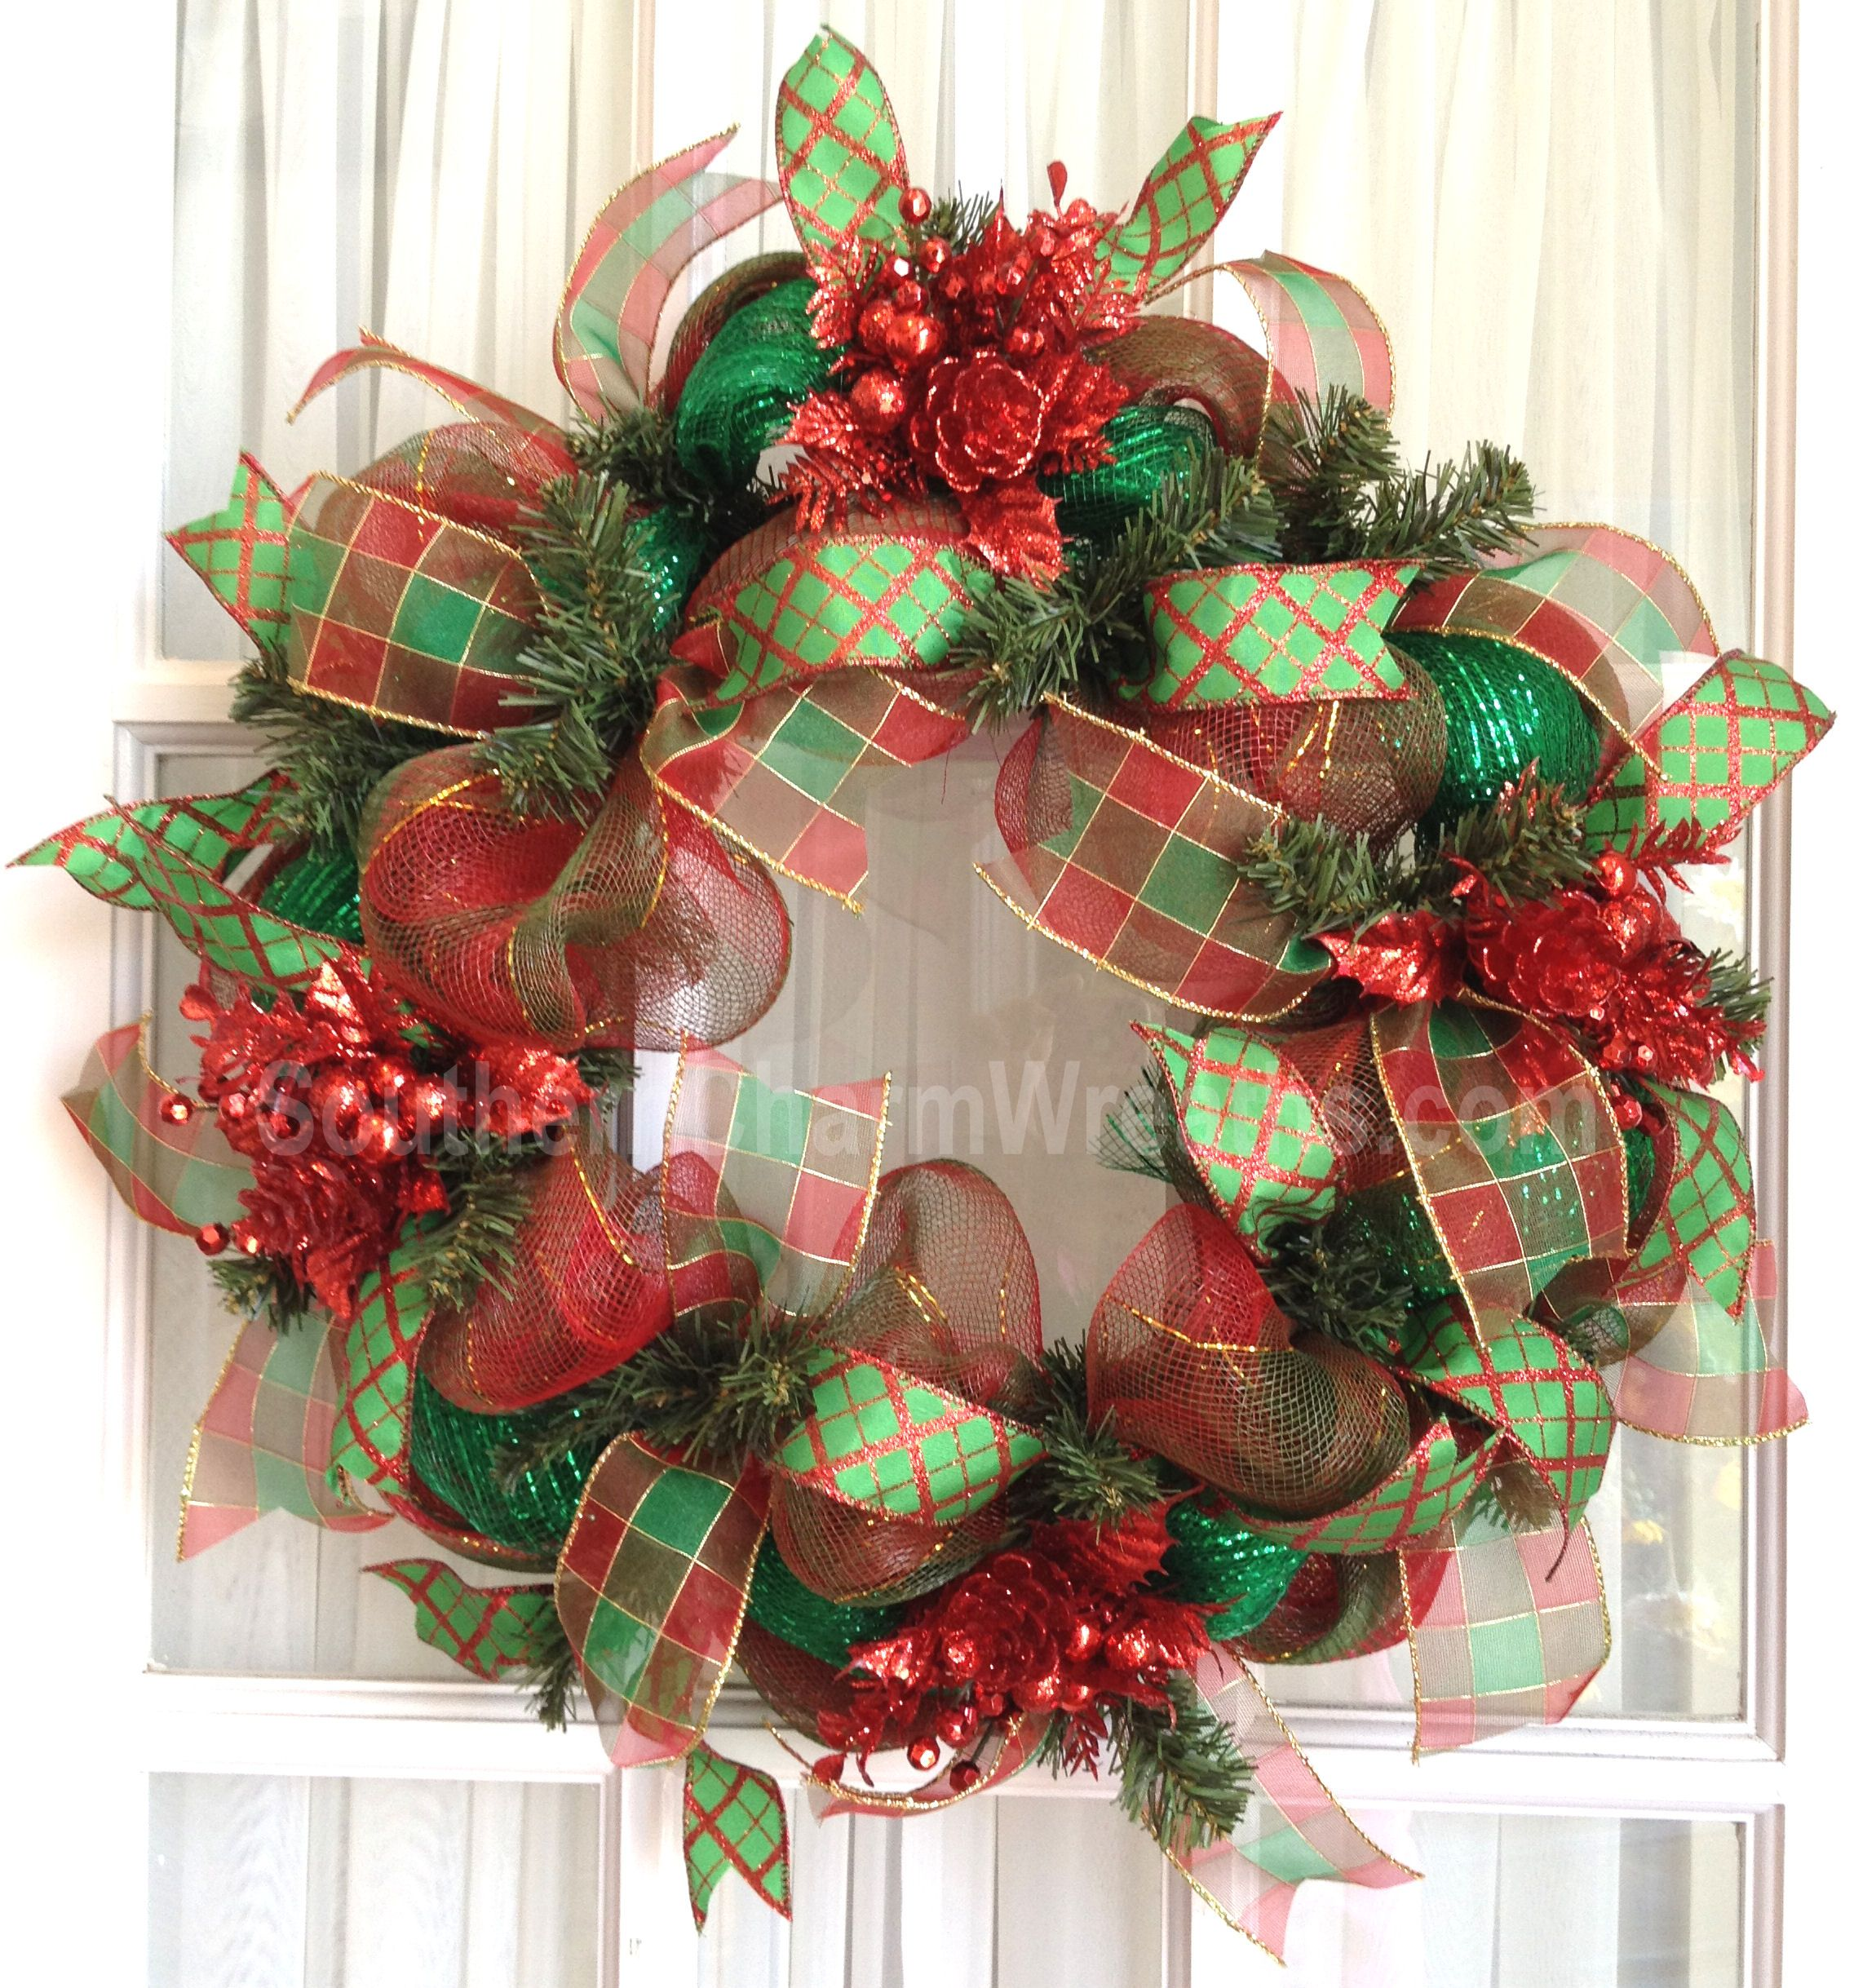 Deco Mesh Christmas Wreath Slim To Fit Between Screen Door